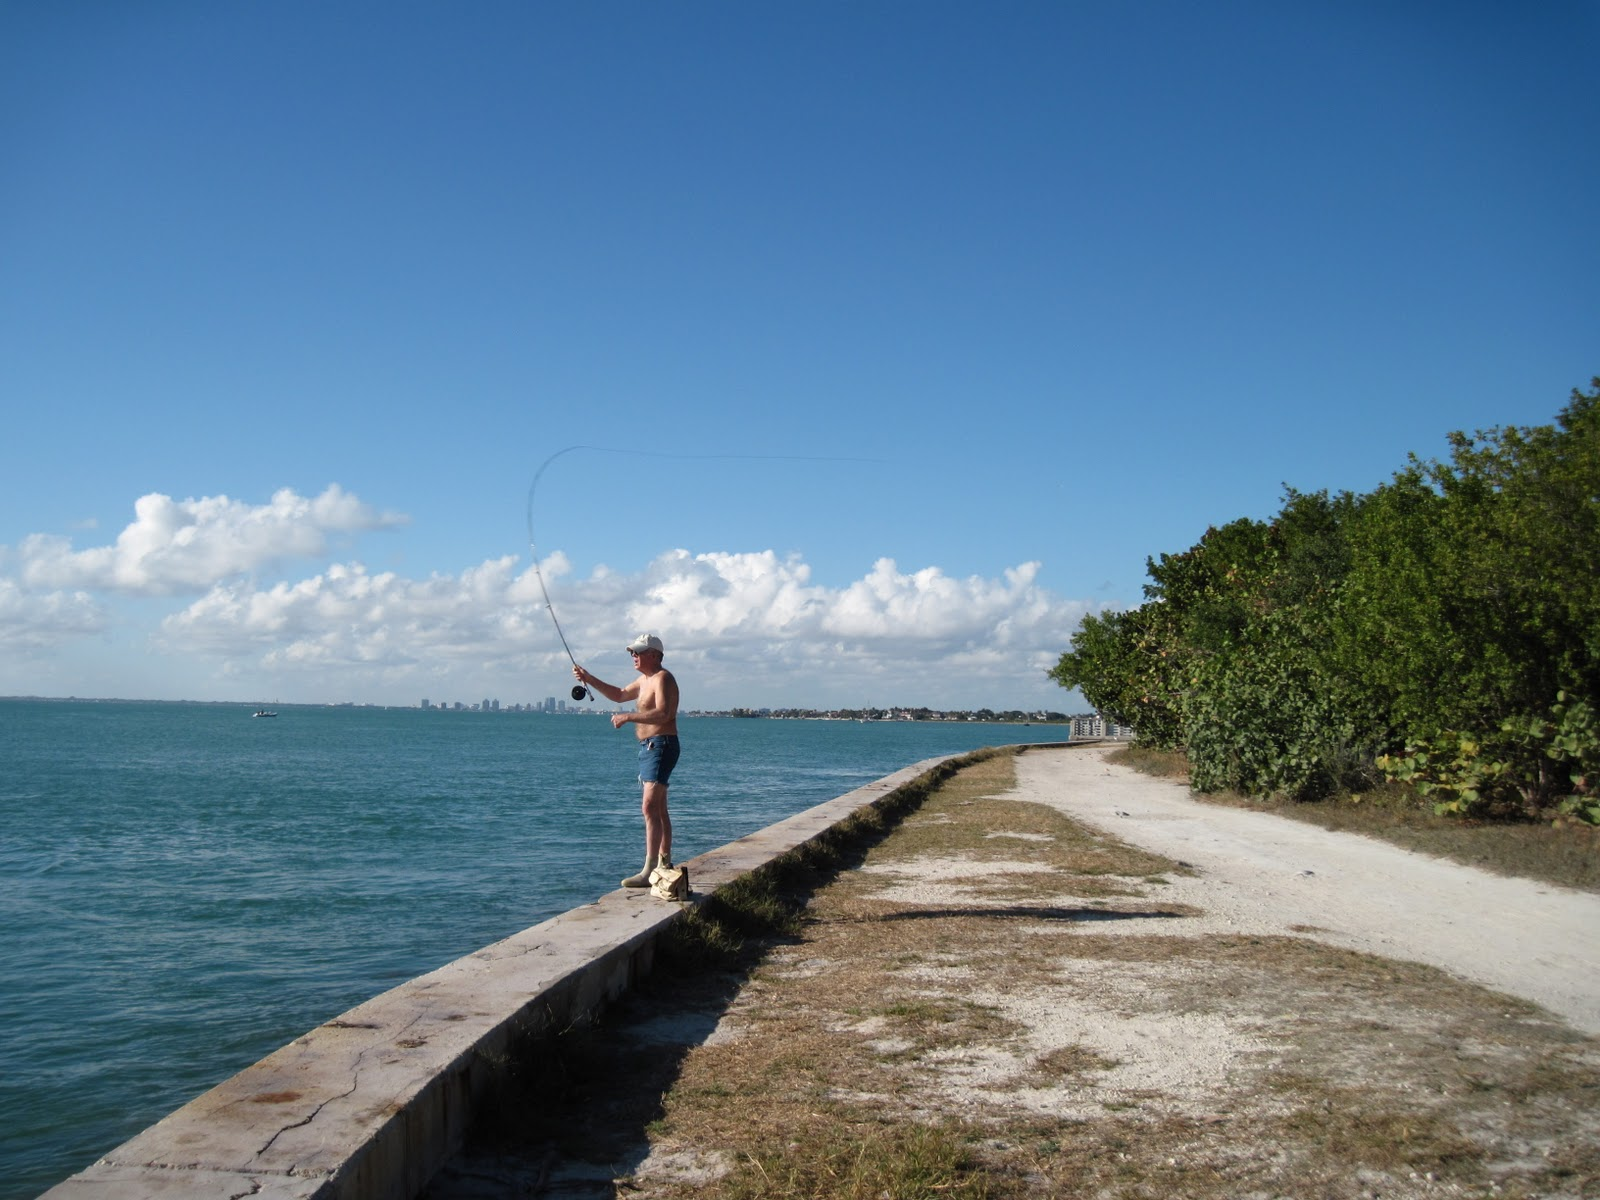 sagerange jay fishing key biscayne